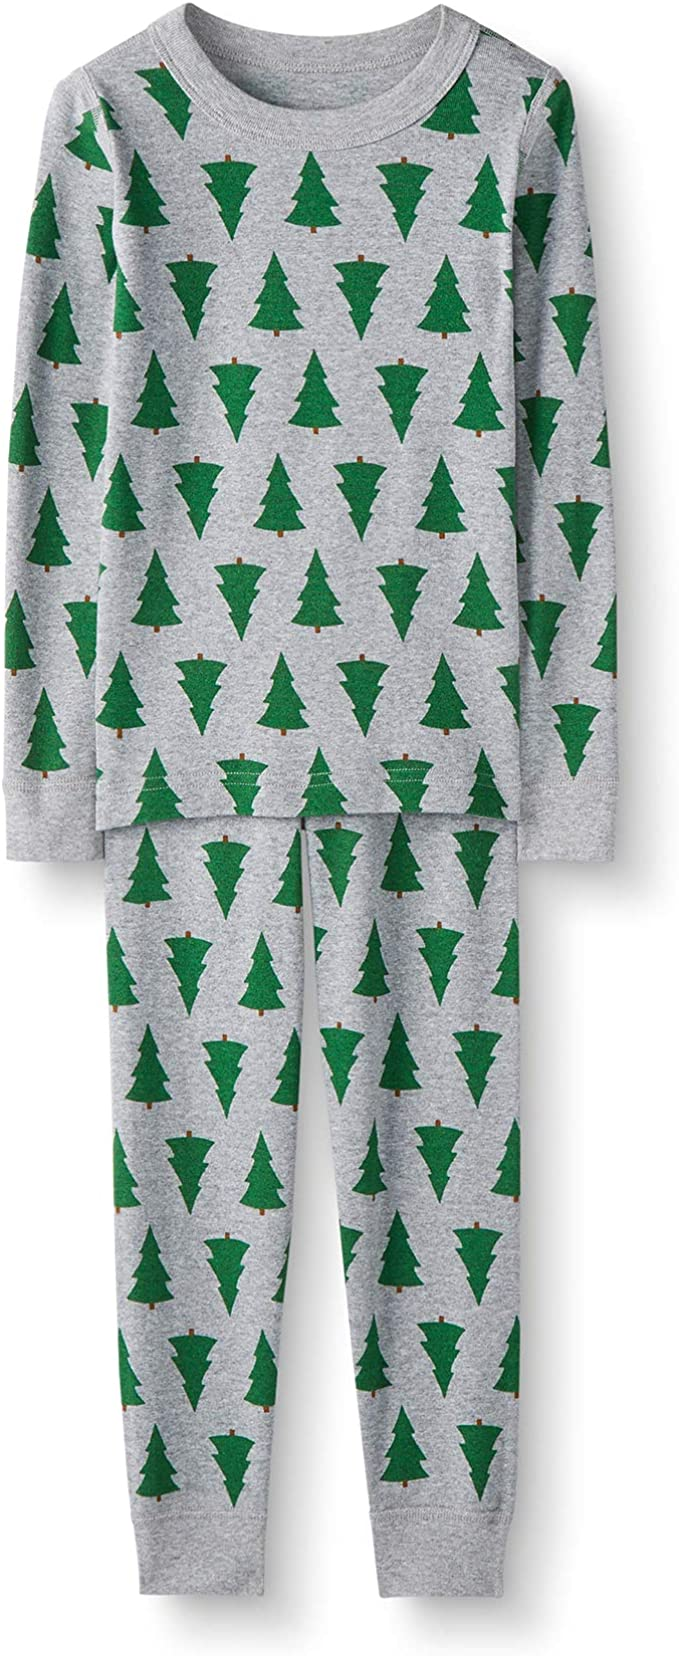 Hanna Andersson SW Holiday Print Family Pajamas